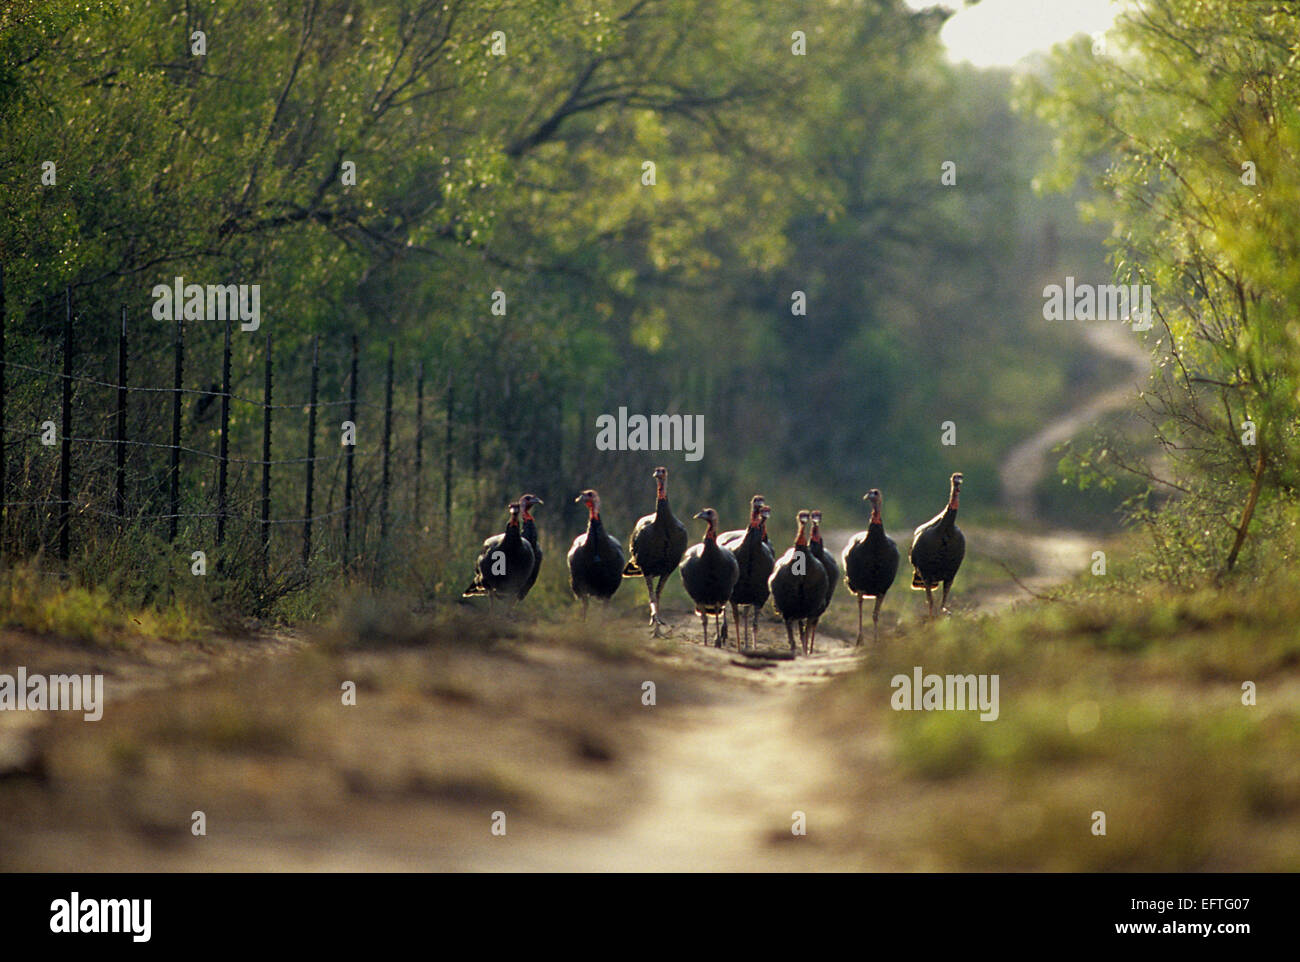 A flock of turkeys on a Texas ranch road - Stock Image